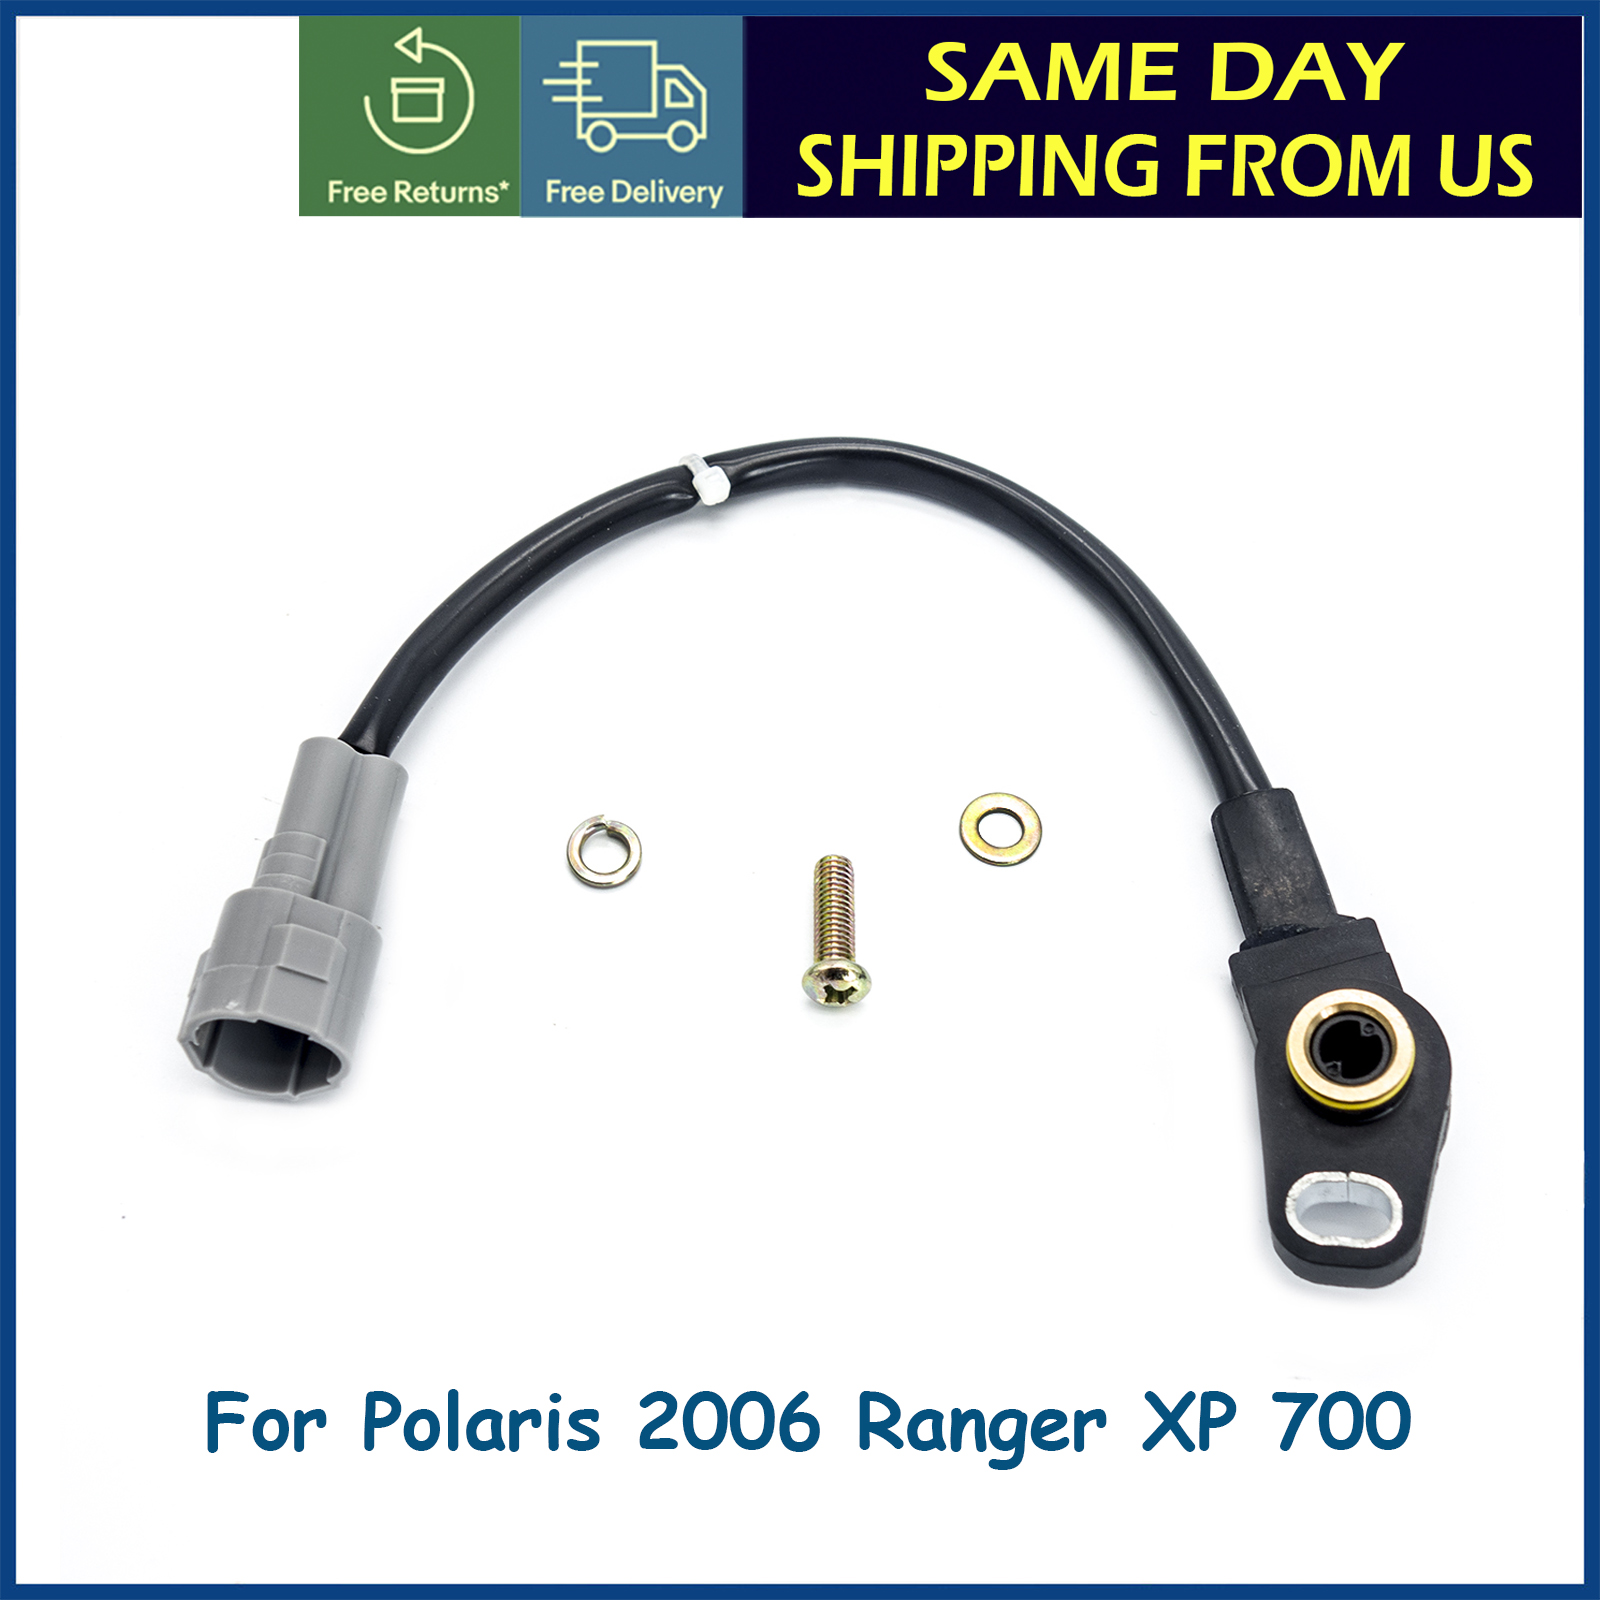 US Throttle Position Sensor for Polaris Ranger XP 700 4X4 EFI 2006 RF2033SR139JU